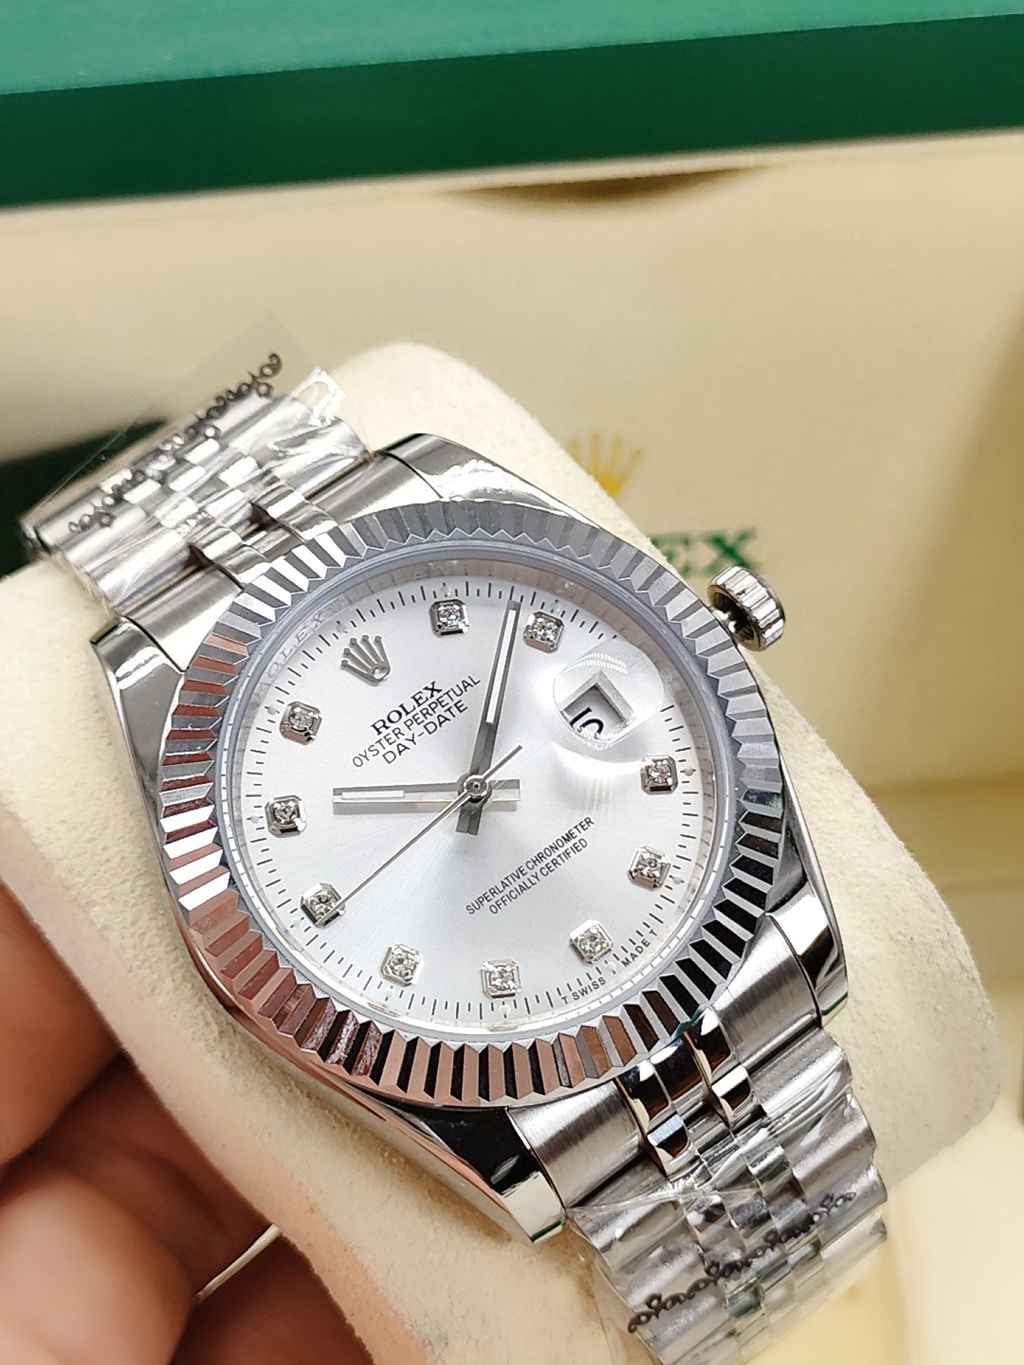 Datejust silver 41mm fluted bezel jubilee band AAA automatic 2813 movement men watch S